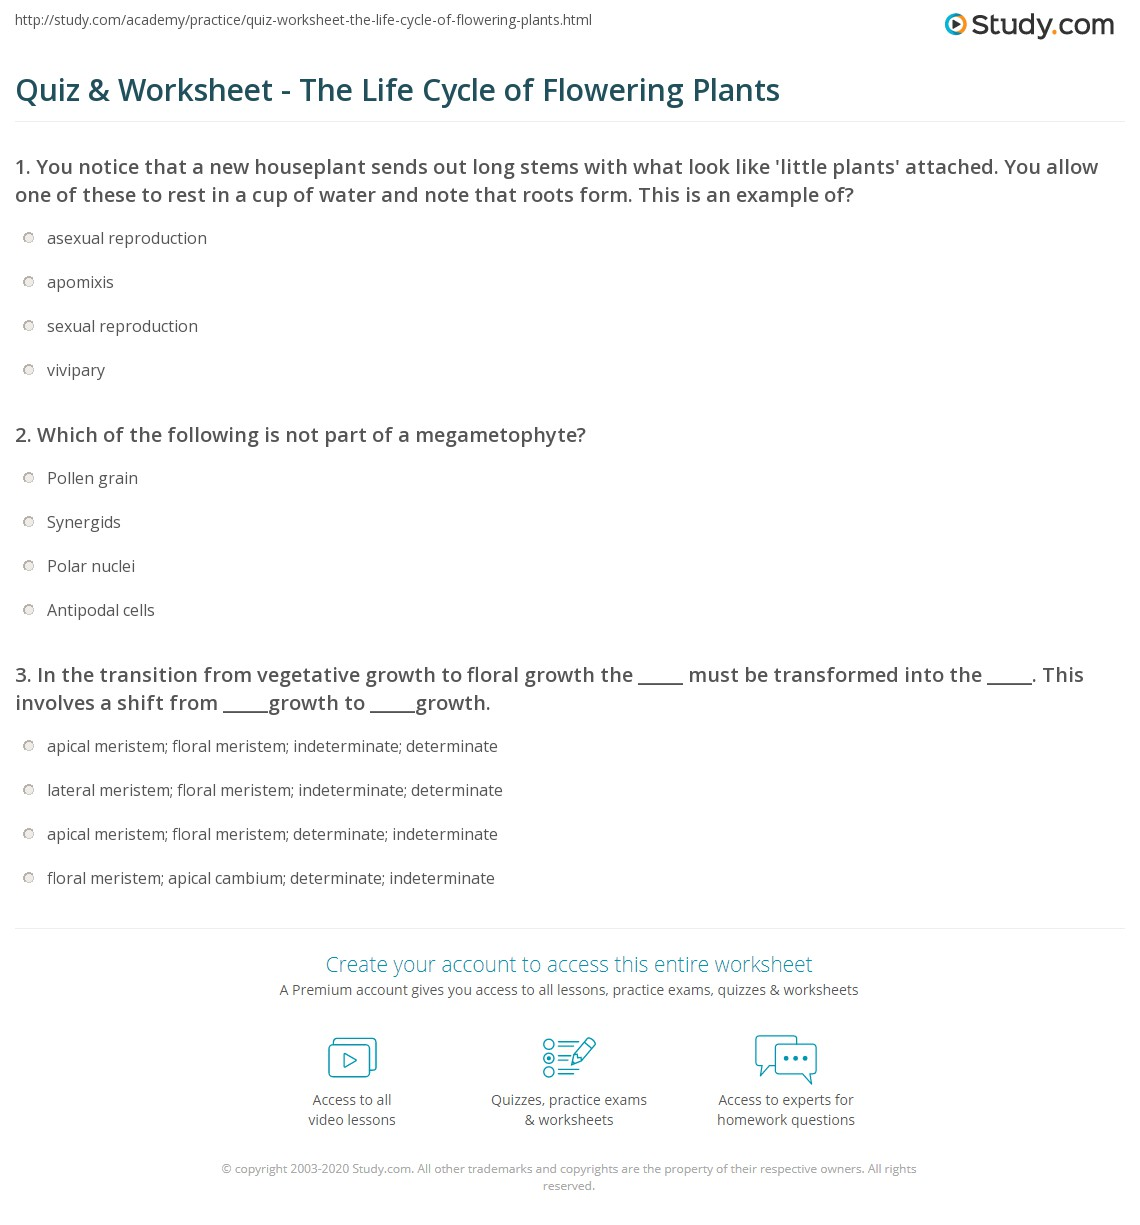 Quiz & Worksheet - The Life Cycle of Flowering Plants | Study.com